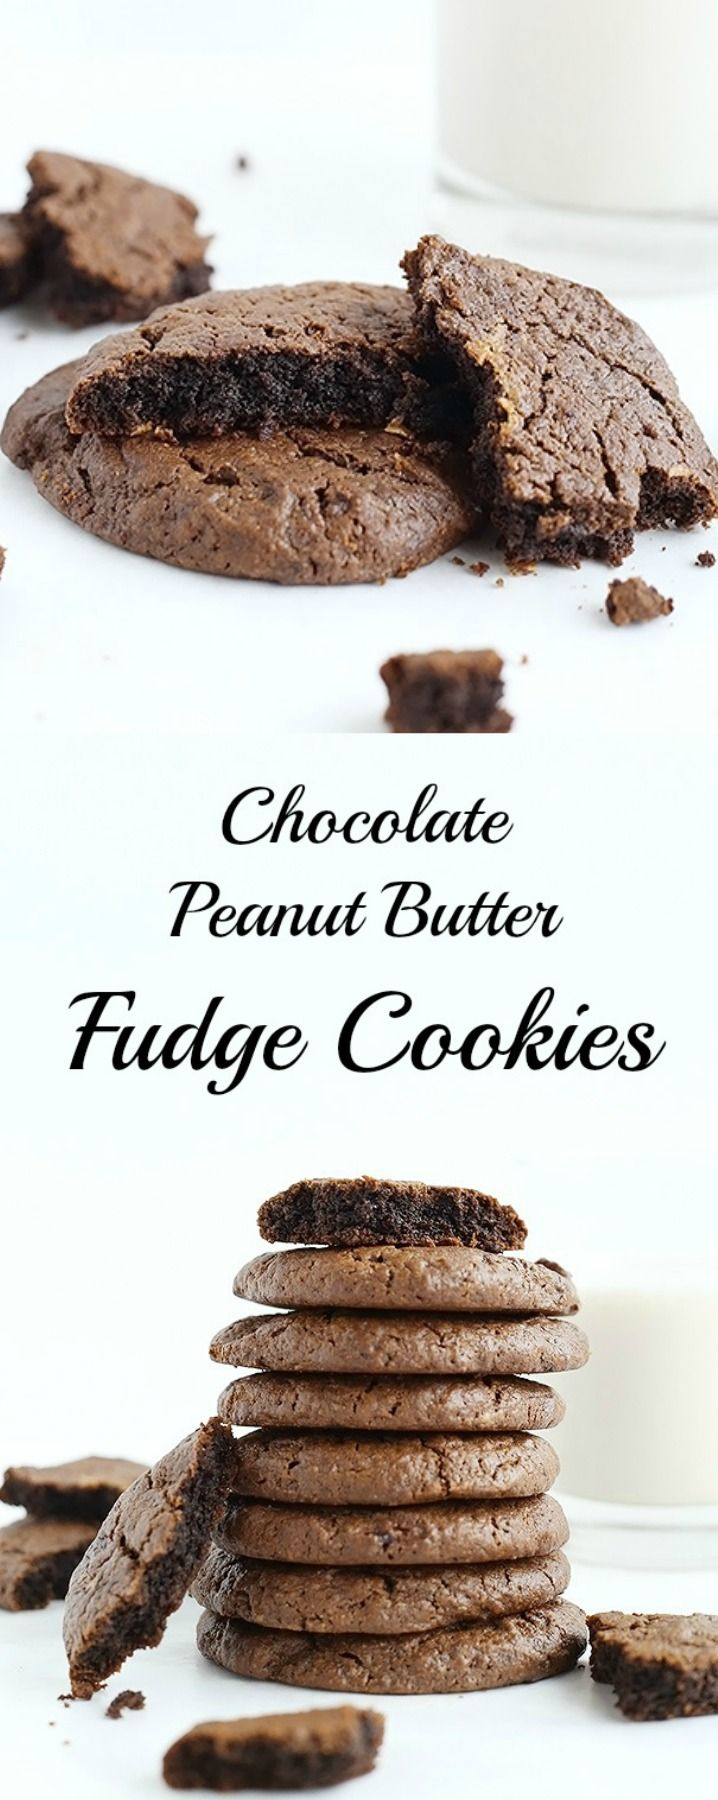 Chocolate Peanut Butter Fudge Cookies that are Vegan and Gluten free and melt in your mouth! Soft and super quick and easy to make, only 6 ingredients! / TwoRaspberries.com